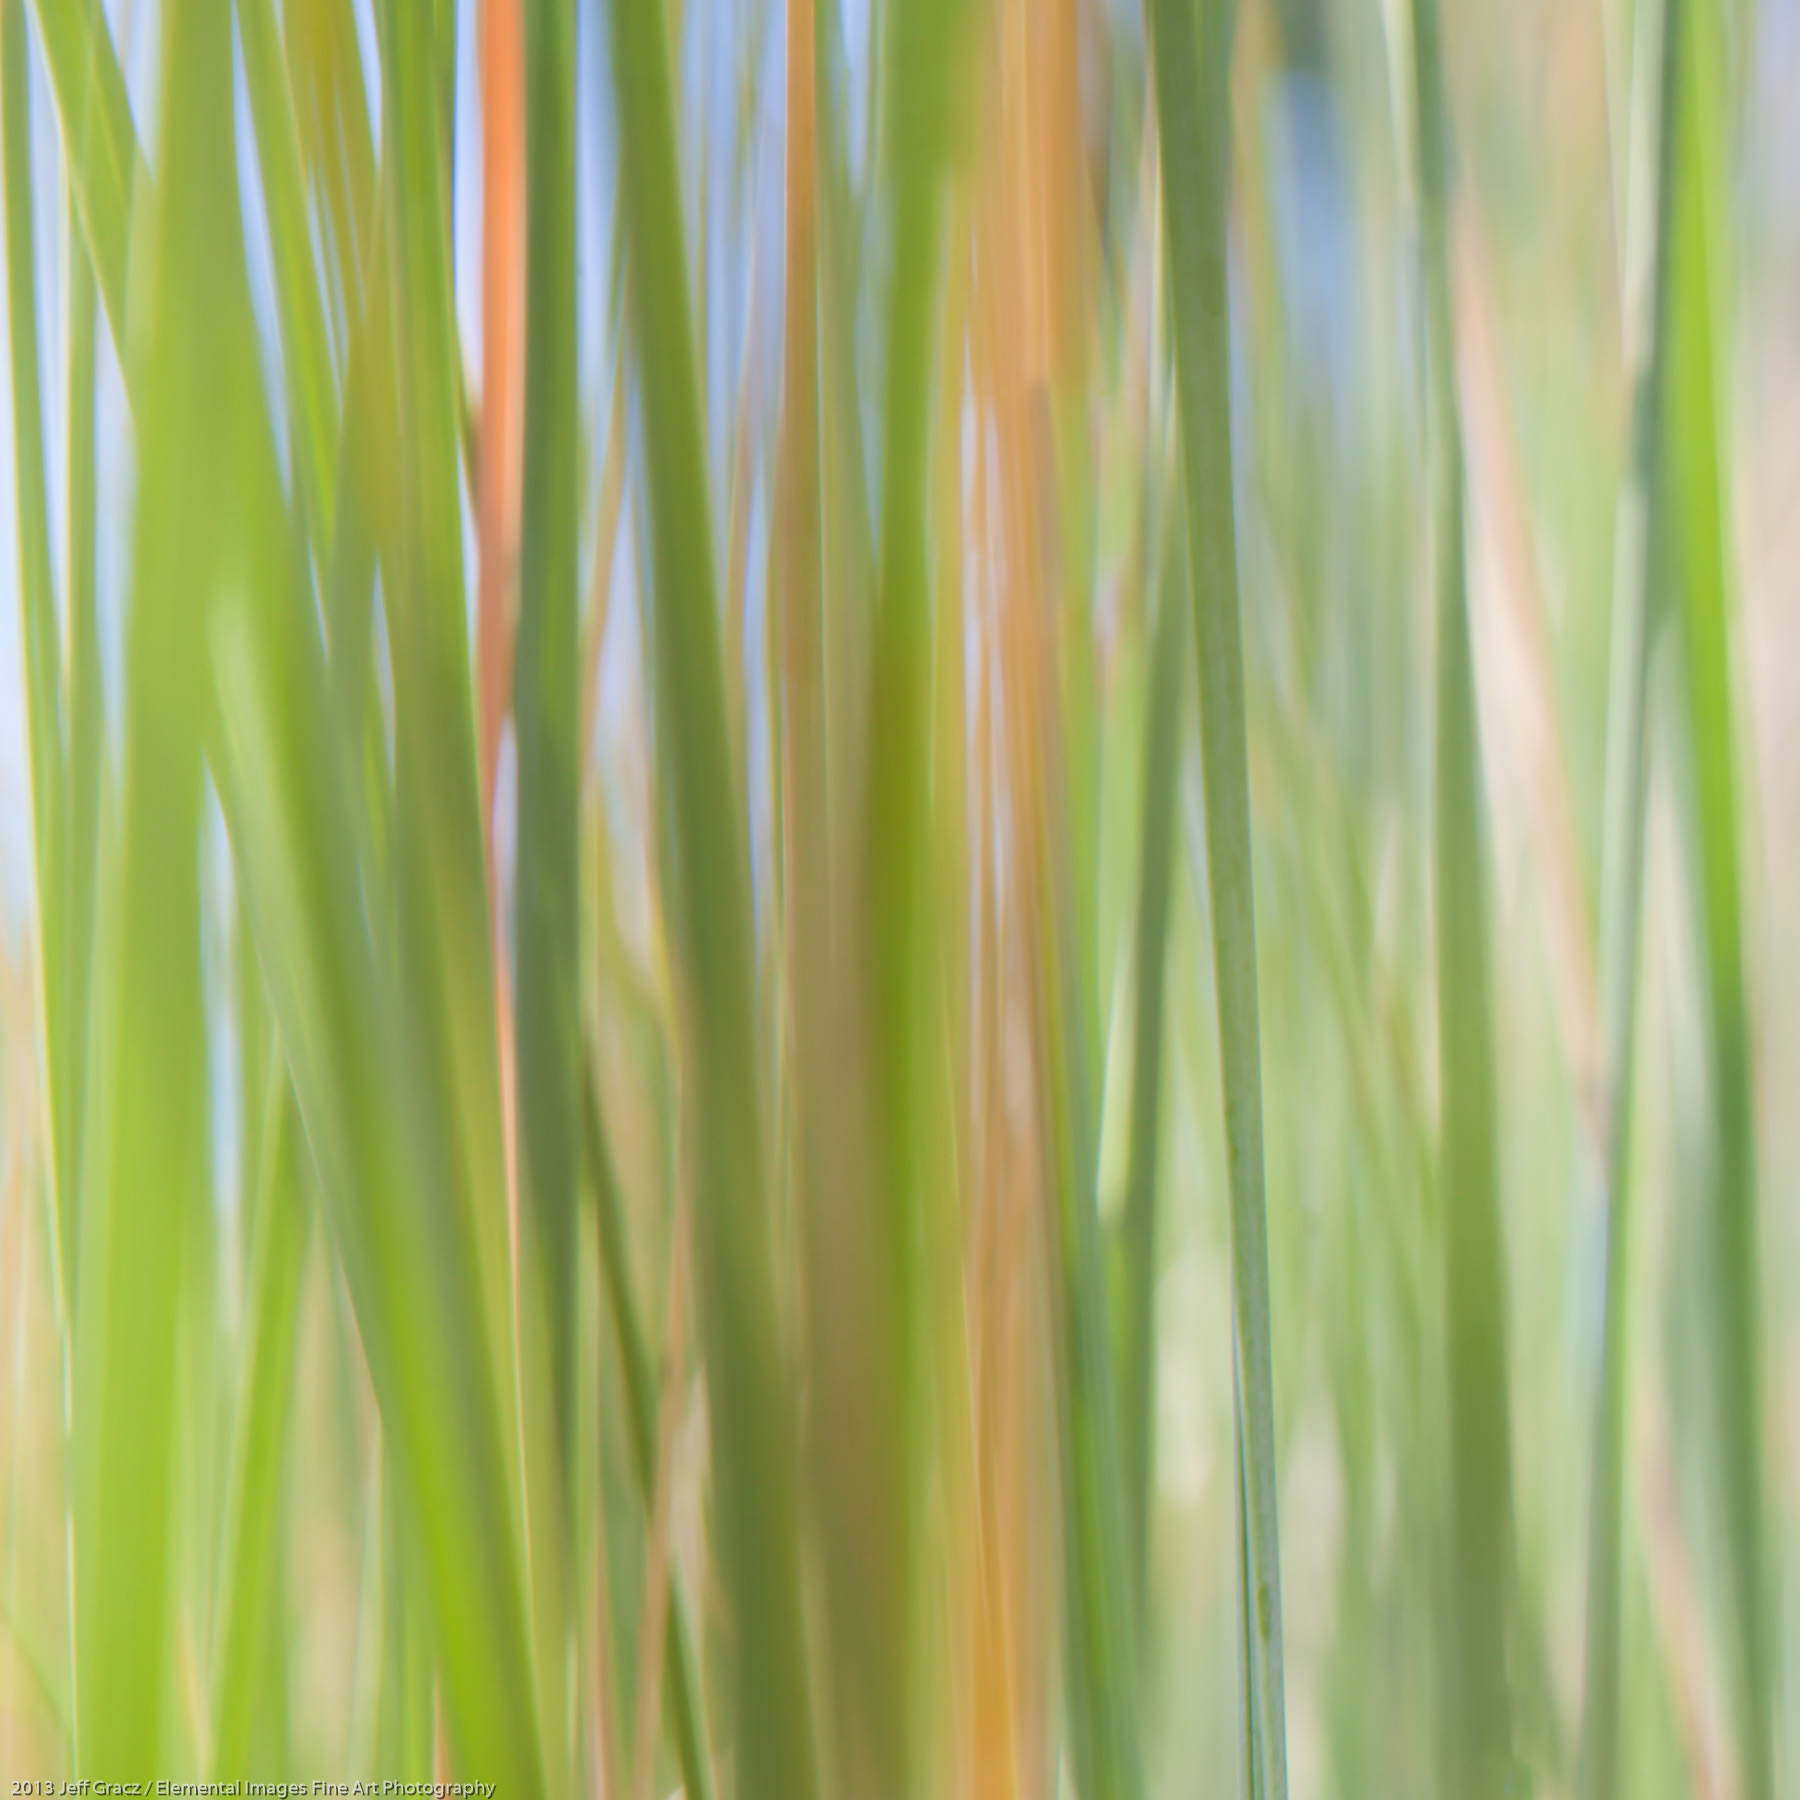 Grasses LXII | Portland | OR | USA - © 2013 Jeff Gracz / Elemental Images Fine Art Photography - All Rights Reserved Worldwide